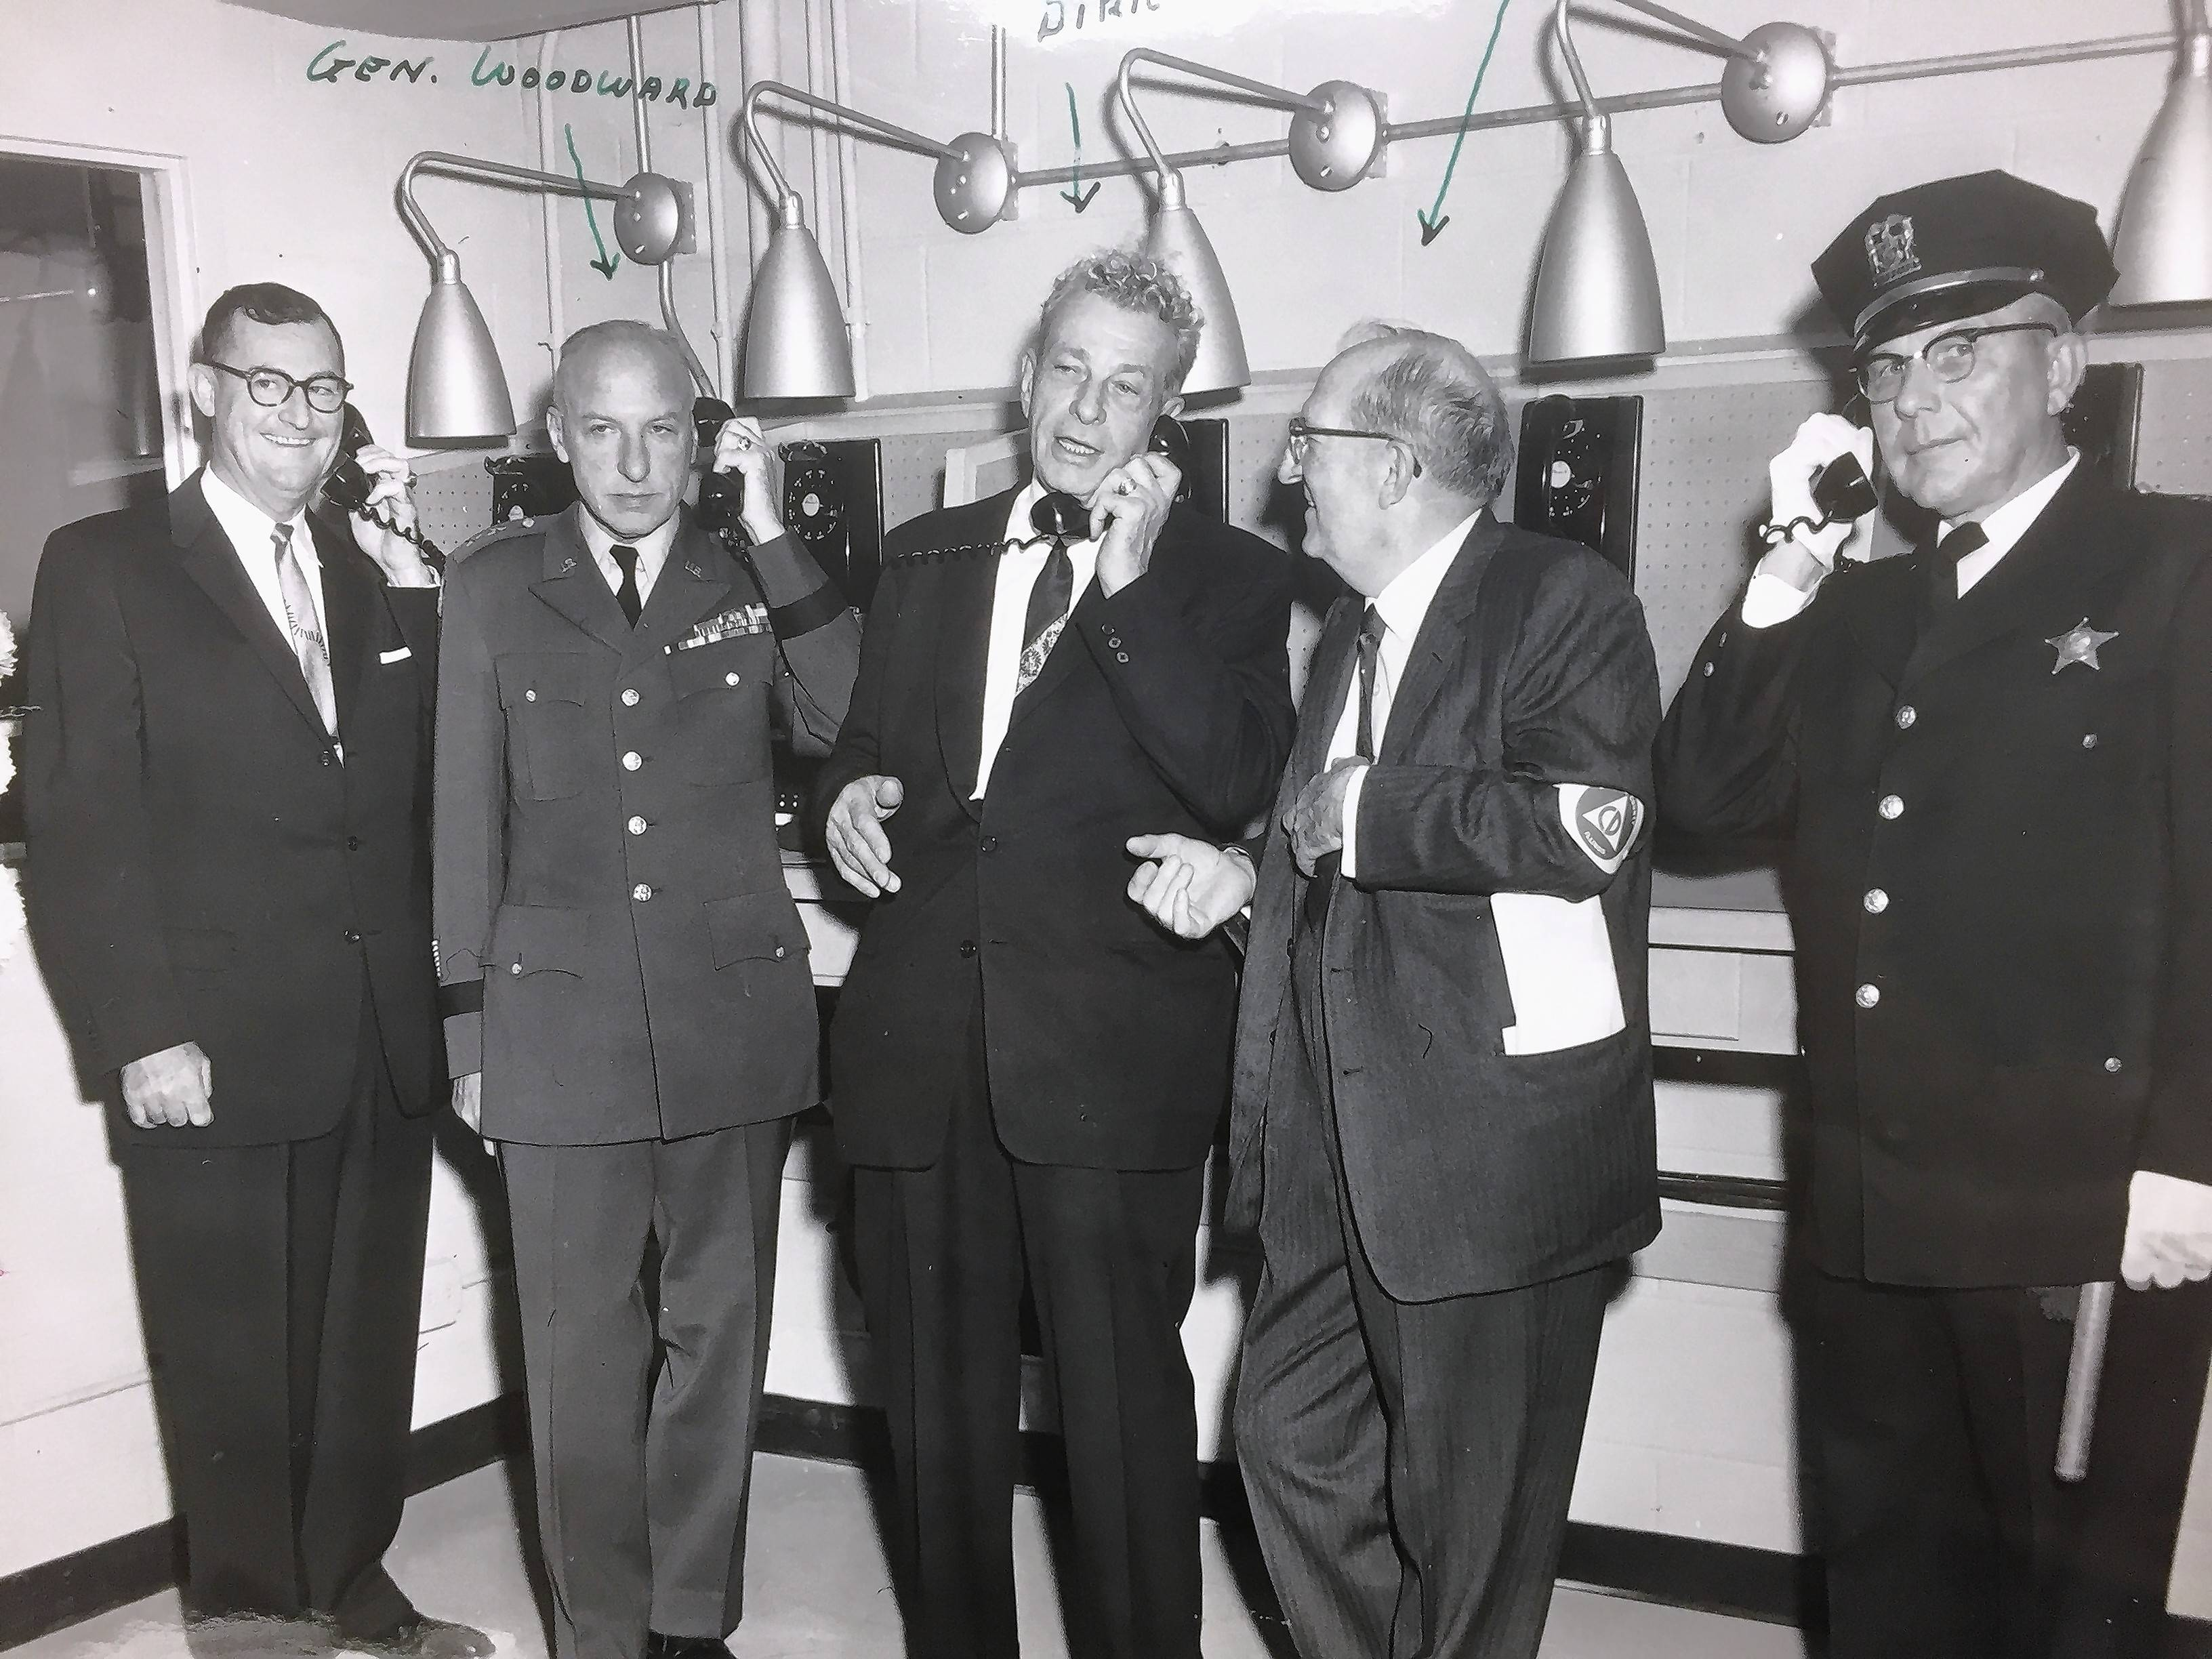 U.S. Senator Everett Dirksen, center, and other state officials test out the Wheaton Cold War bunker after its 1958 dedication.